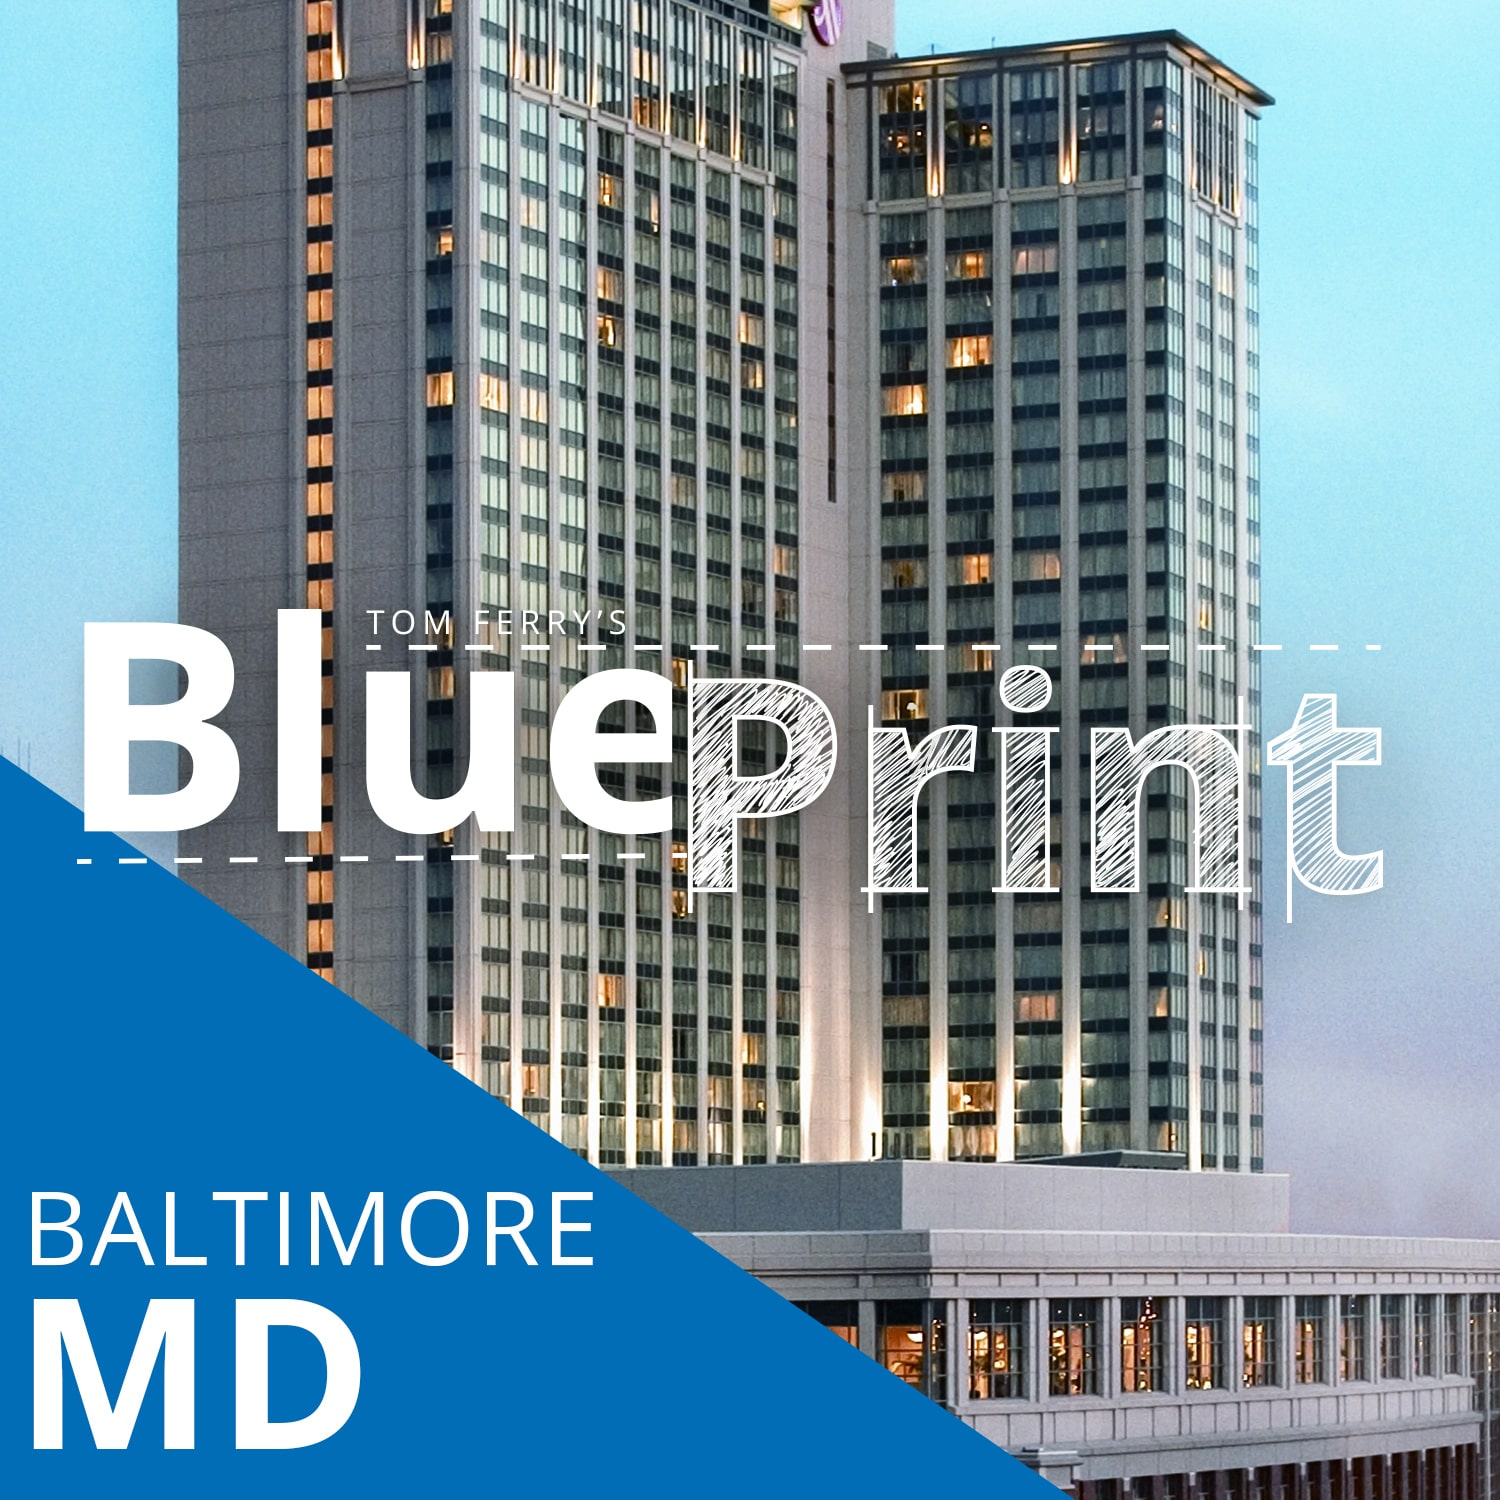 Blueprint baltimore md product event baltimorev3 min malvernweather Image collections